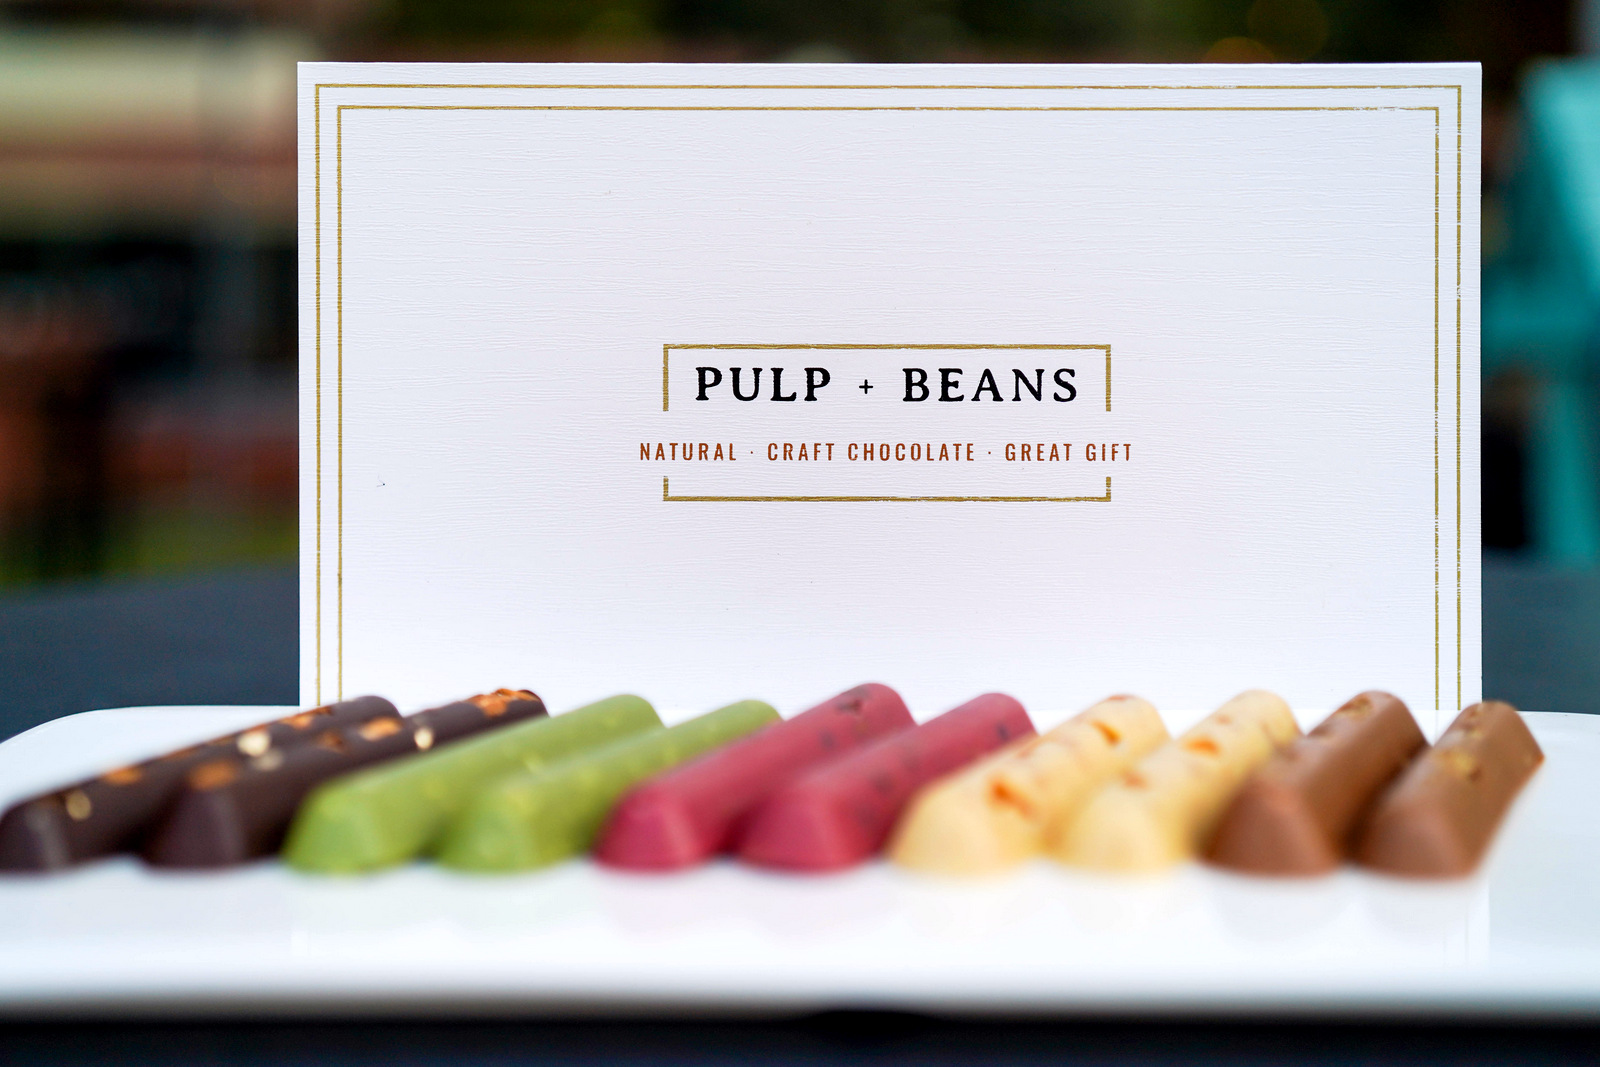 Pulp + Beans: Craft Chocolate Gifts in Five Natural Flavours